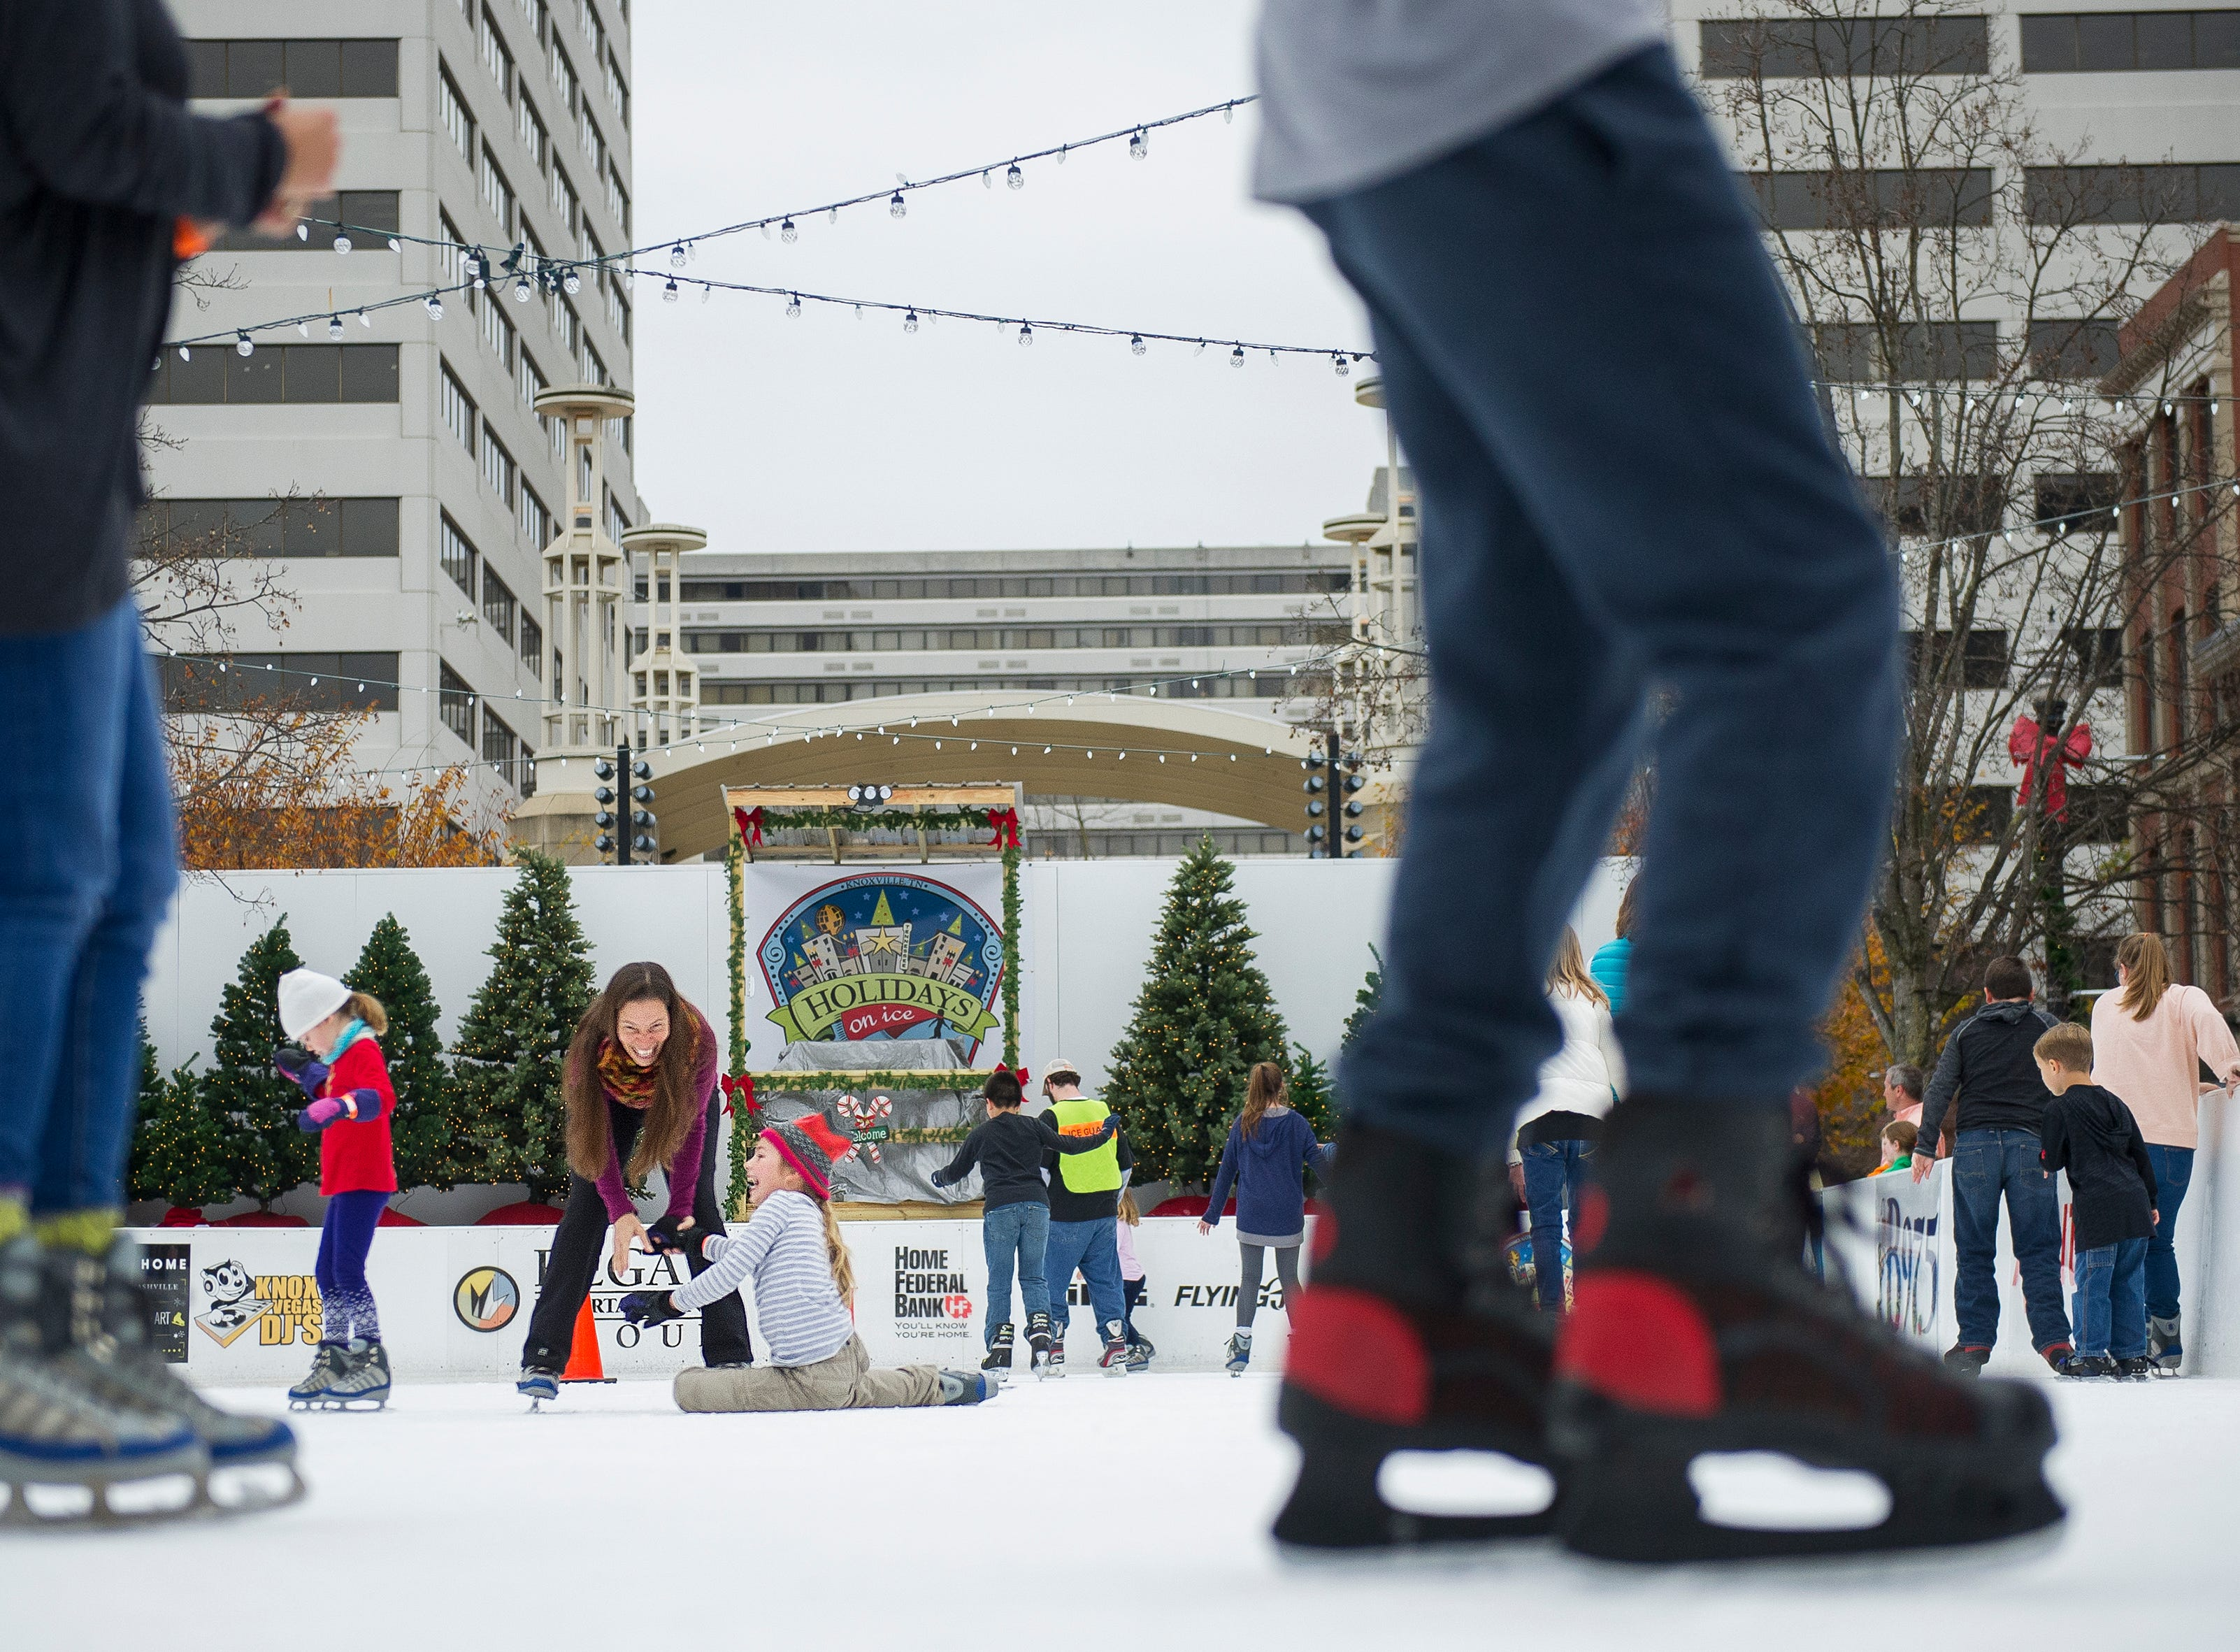 Gina Brace (center) laughs has she helps her daughter Gigi Brace, 9, up after she fell during opening weekend for the Market Square ice skating rink Saturday, Nov. 28, 2015.